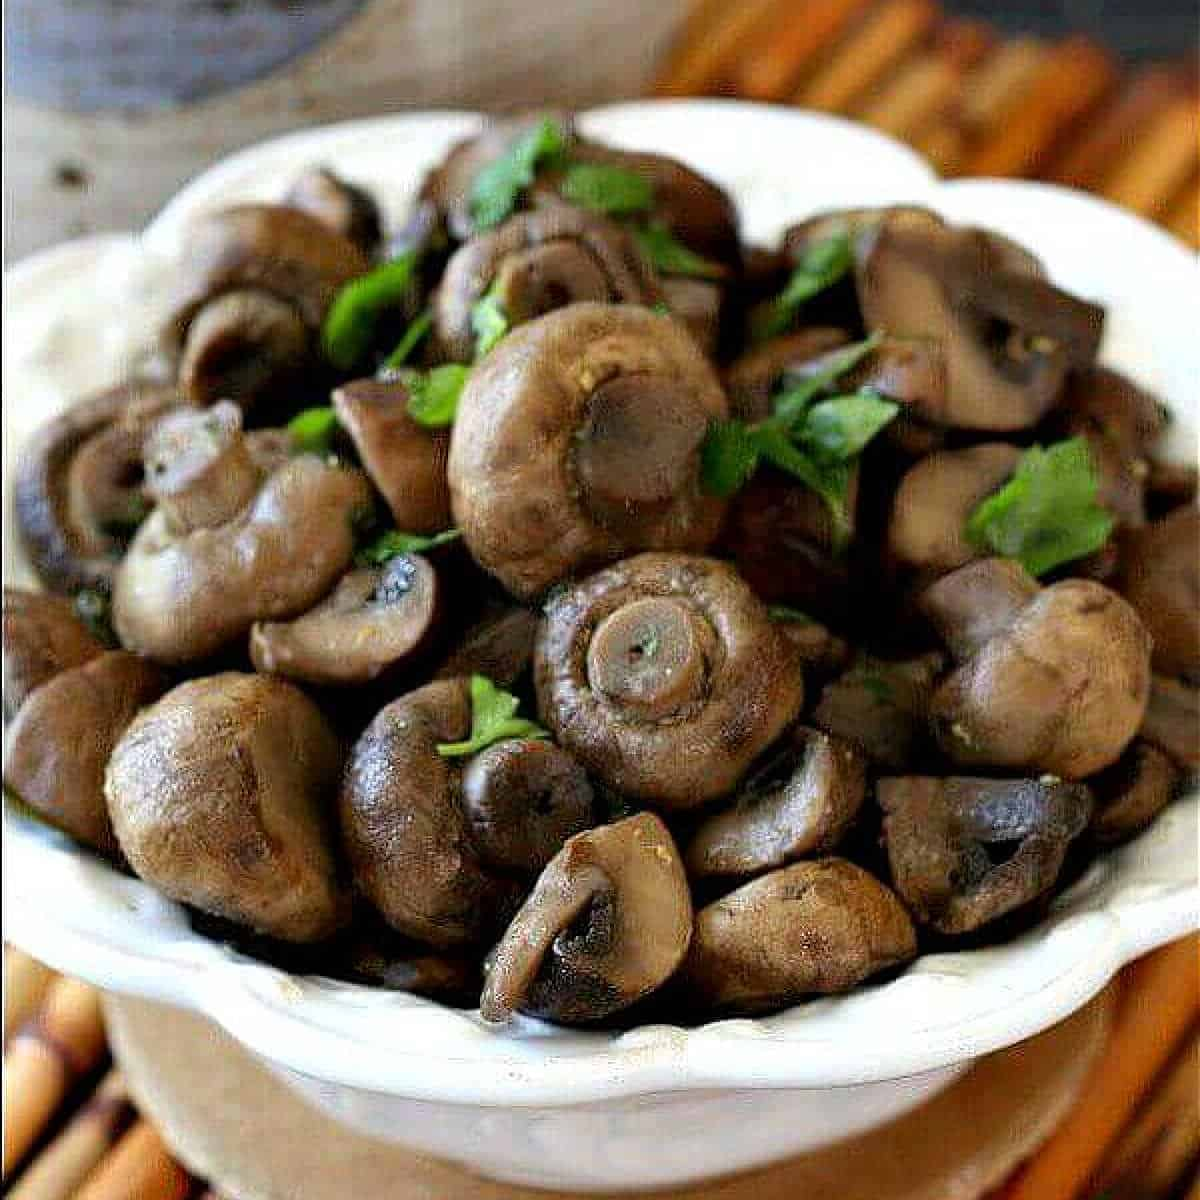 Tilted bowl filled with glistening marinated mushrooms